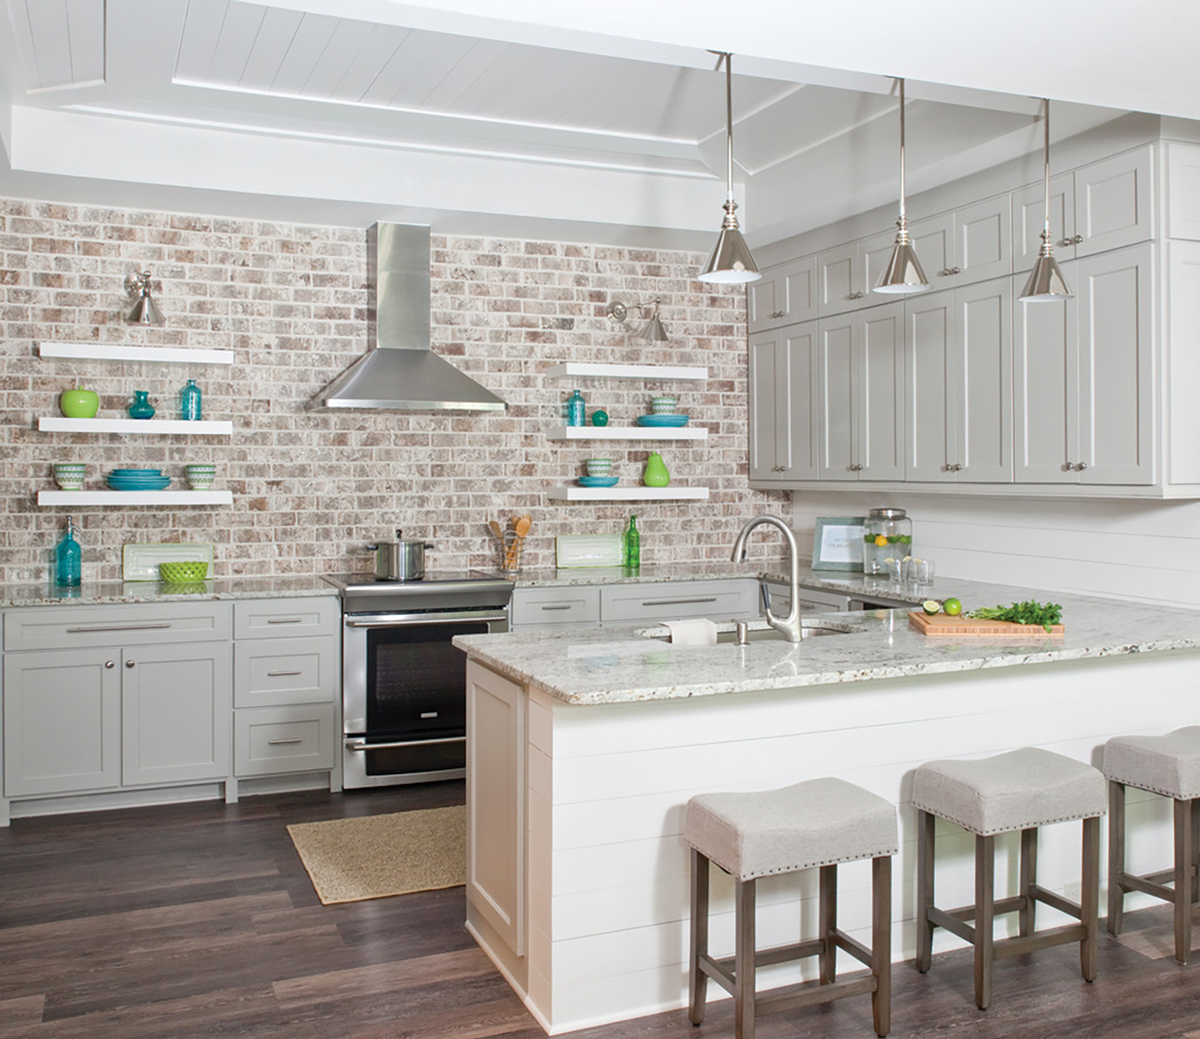 White Kitchen Shelf: Kitchen Cabinets? Or Open Shelving? We Asked An Expert For